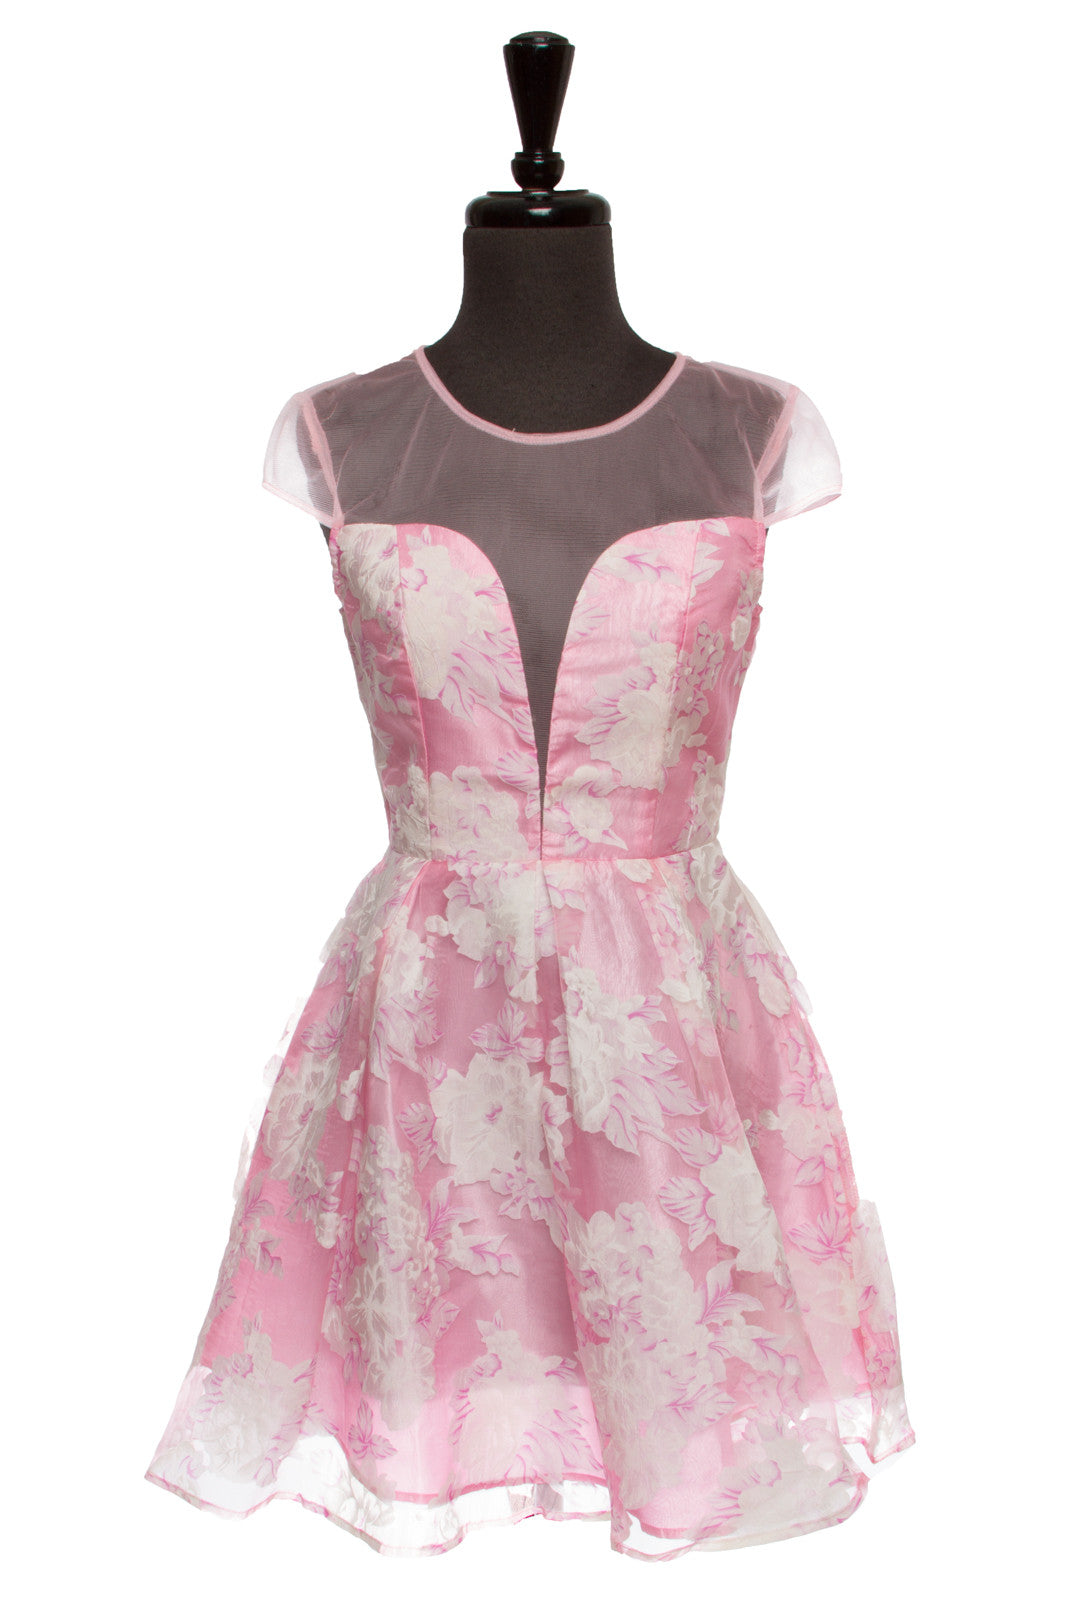 April Flowers Dress